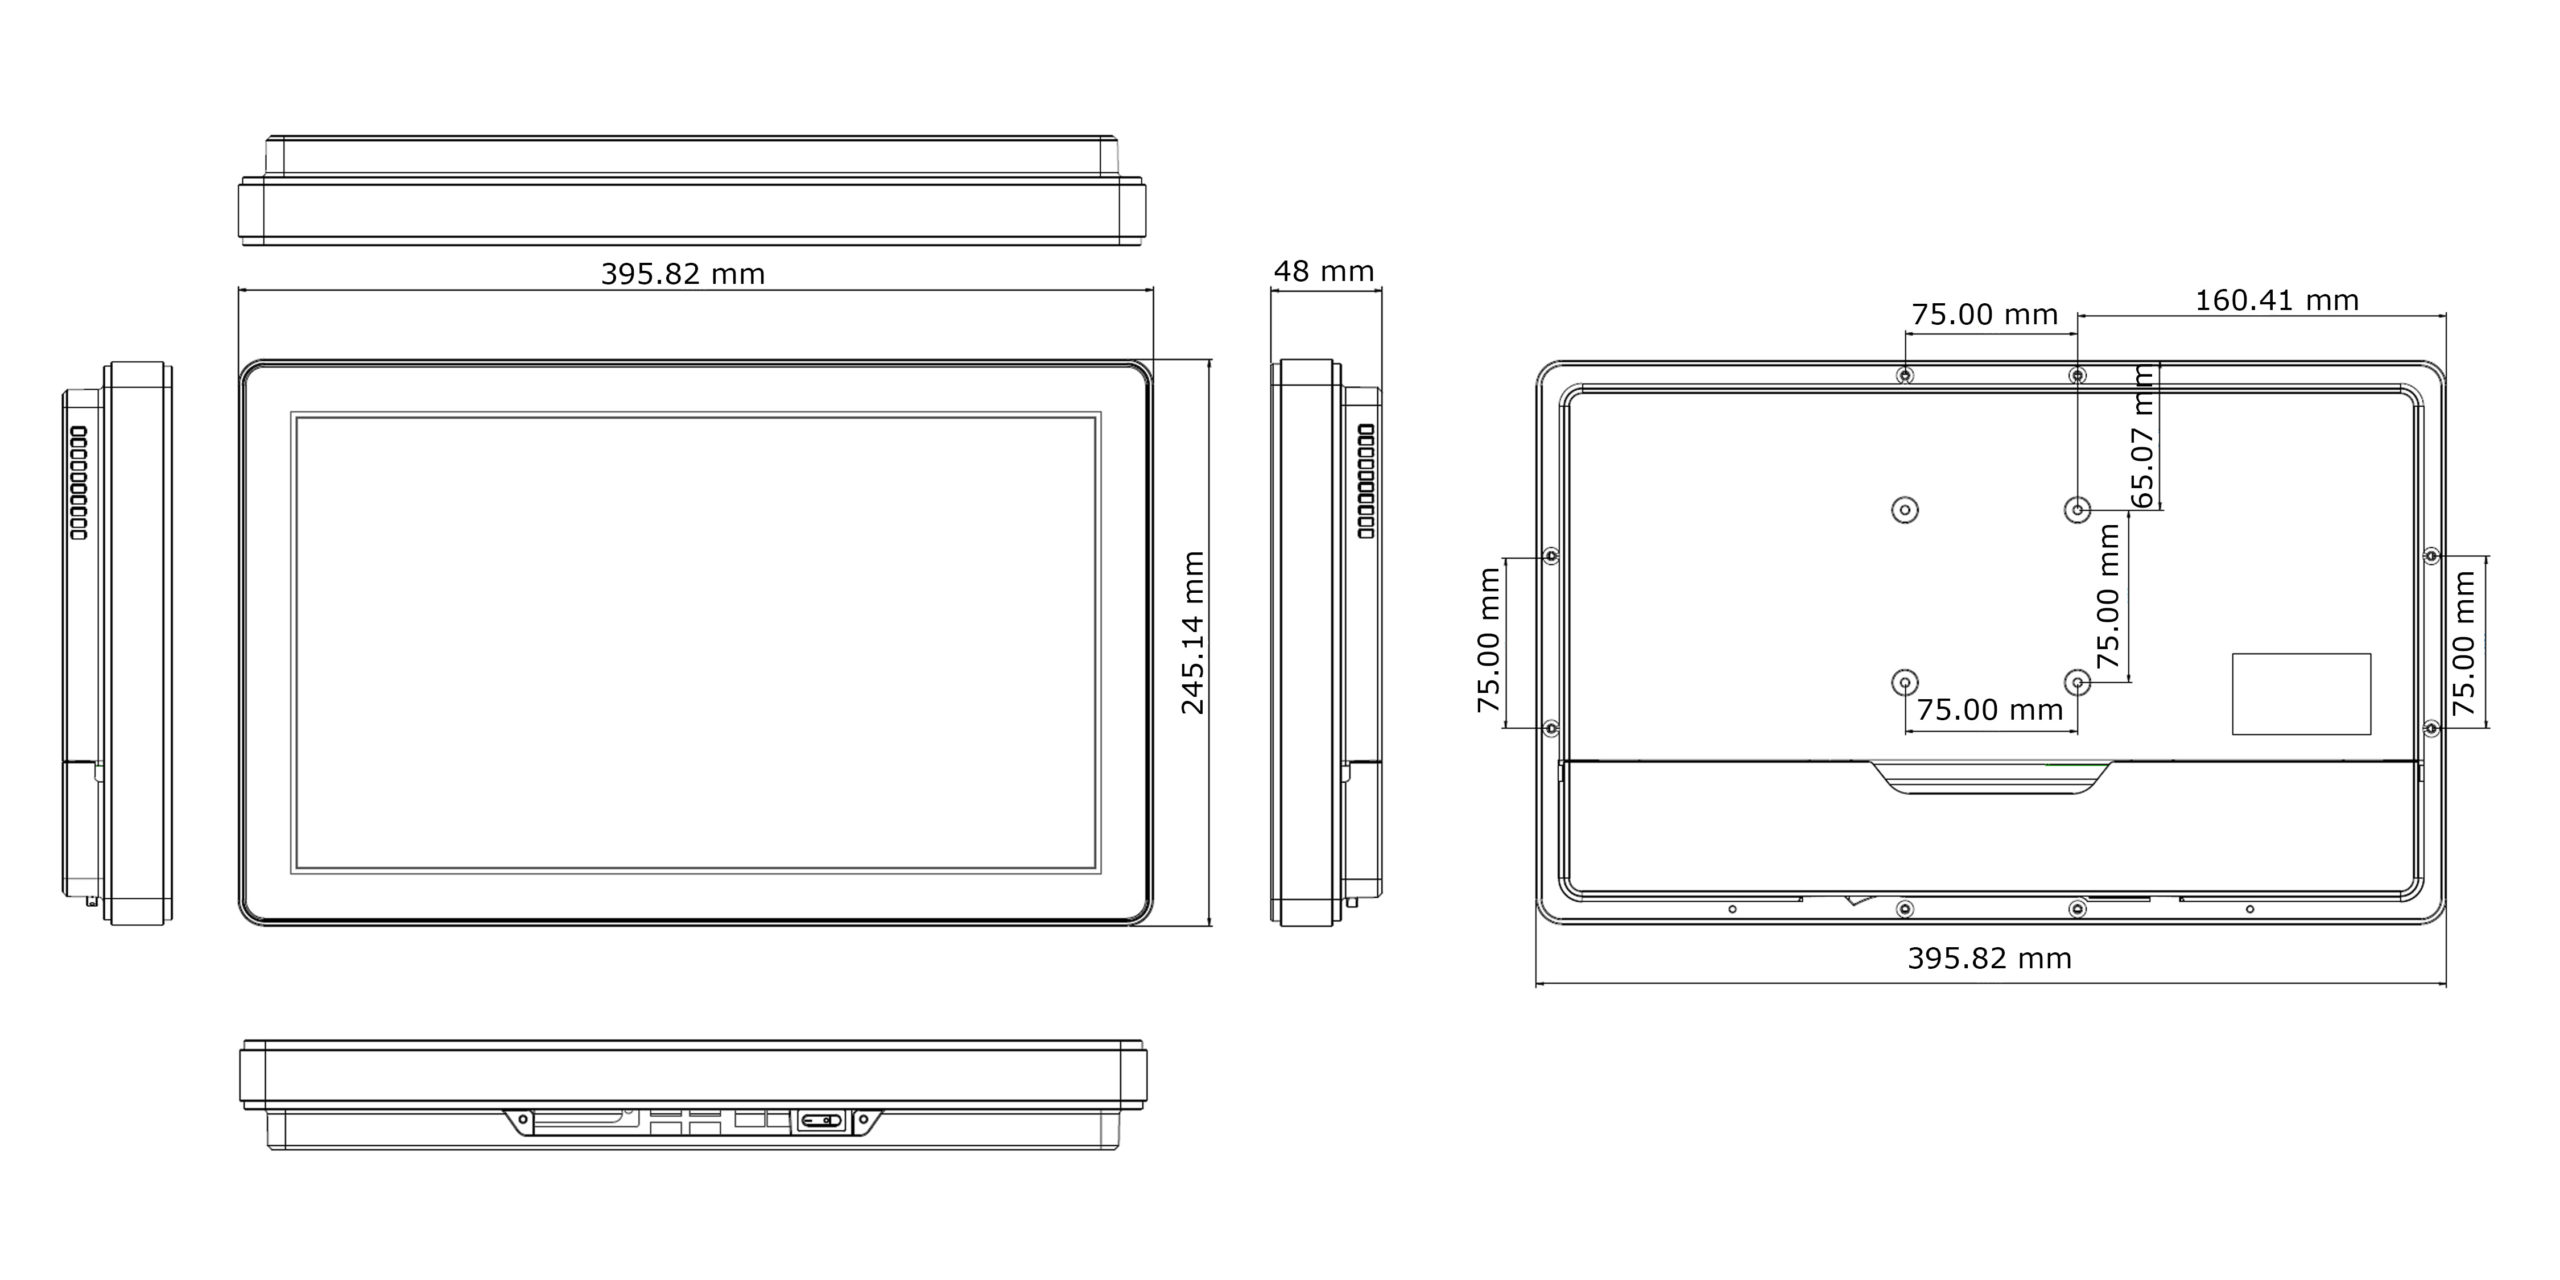 TP-5040-16 Technical Drawing